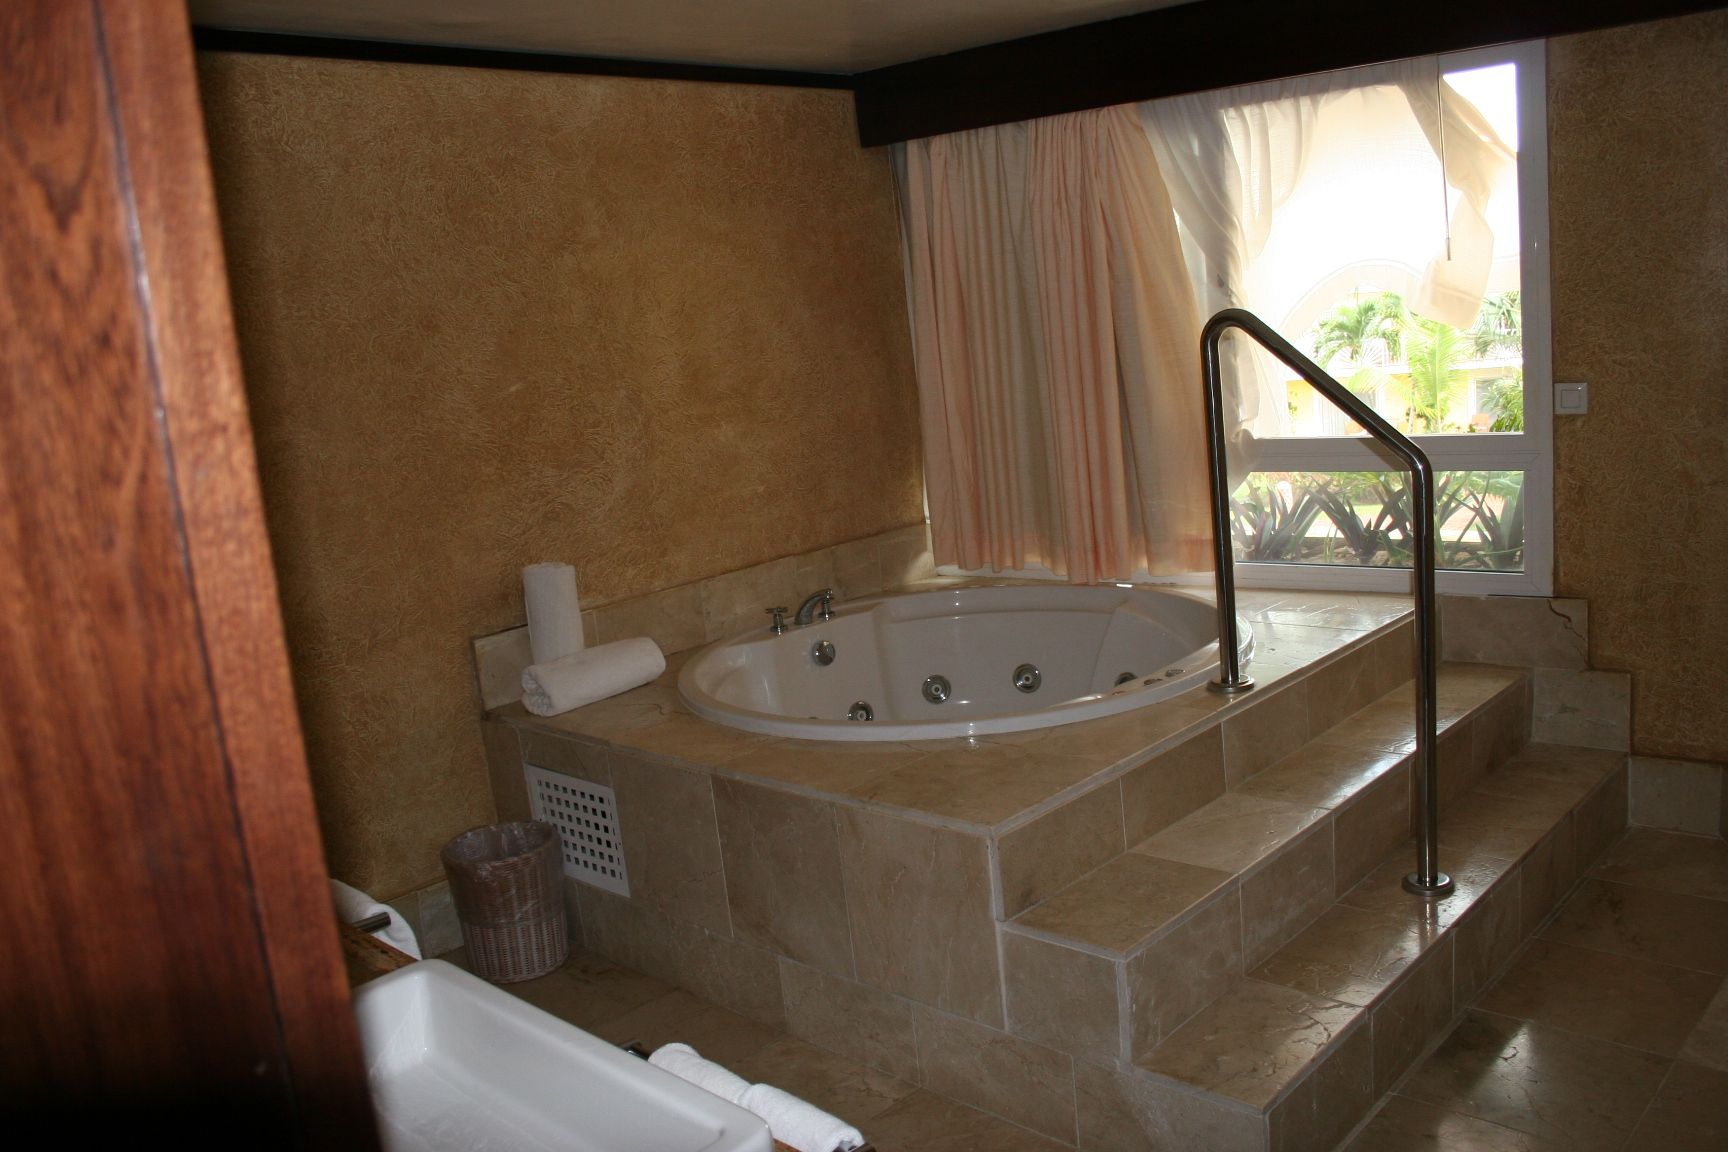 Jacuzzi Tub for 6...... Stayed in Punta Cana, Dominican Republic ...